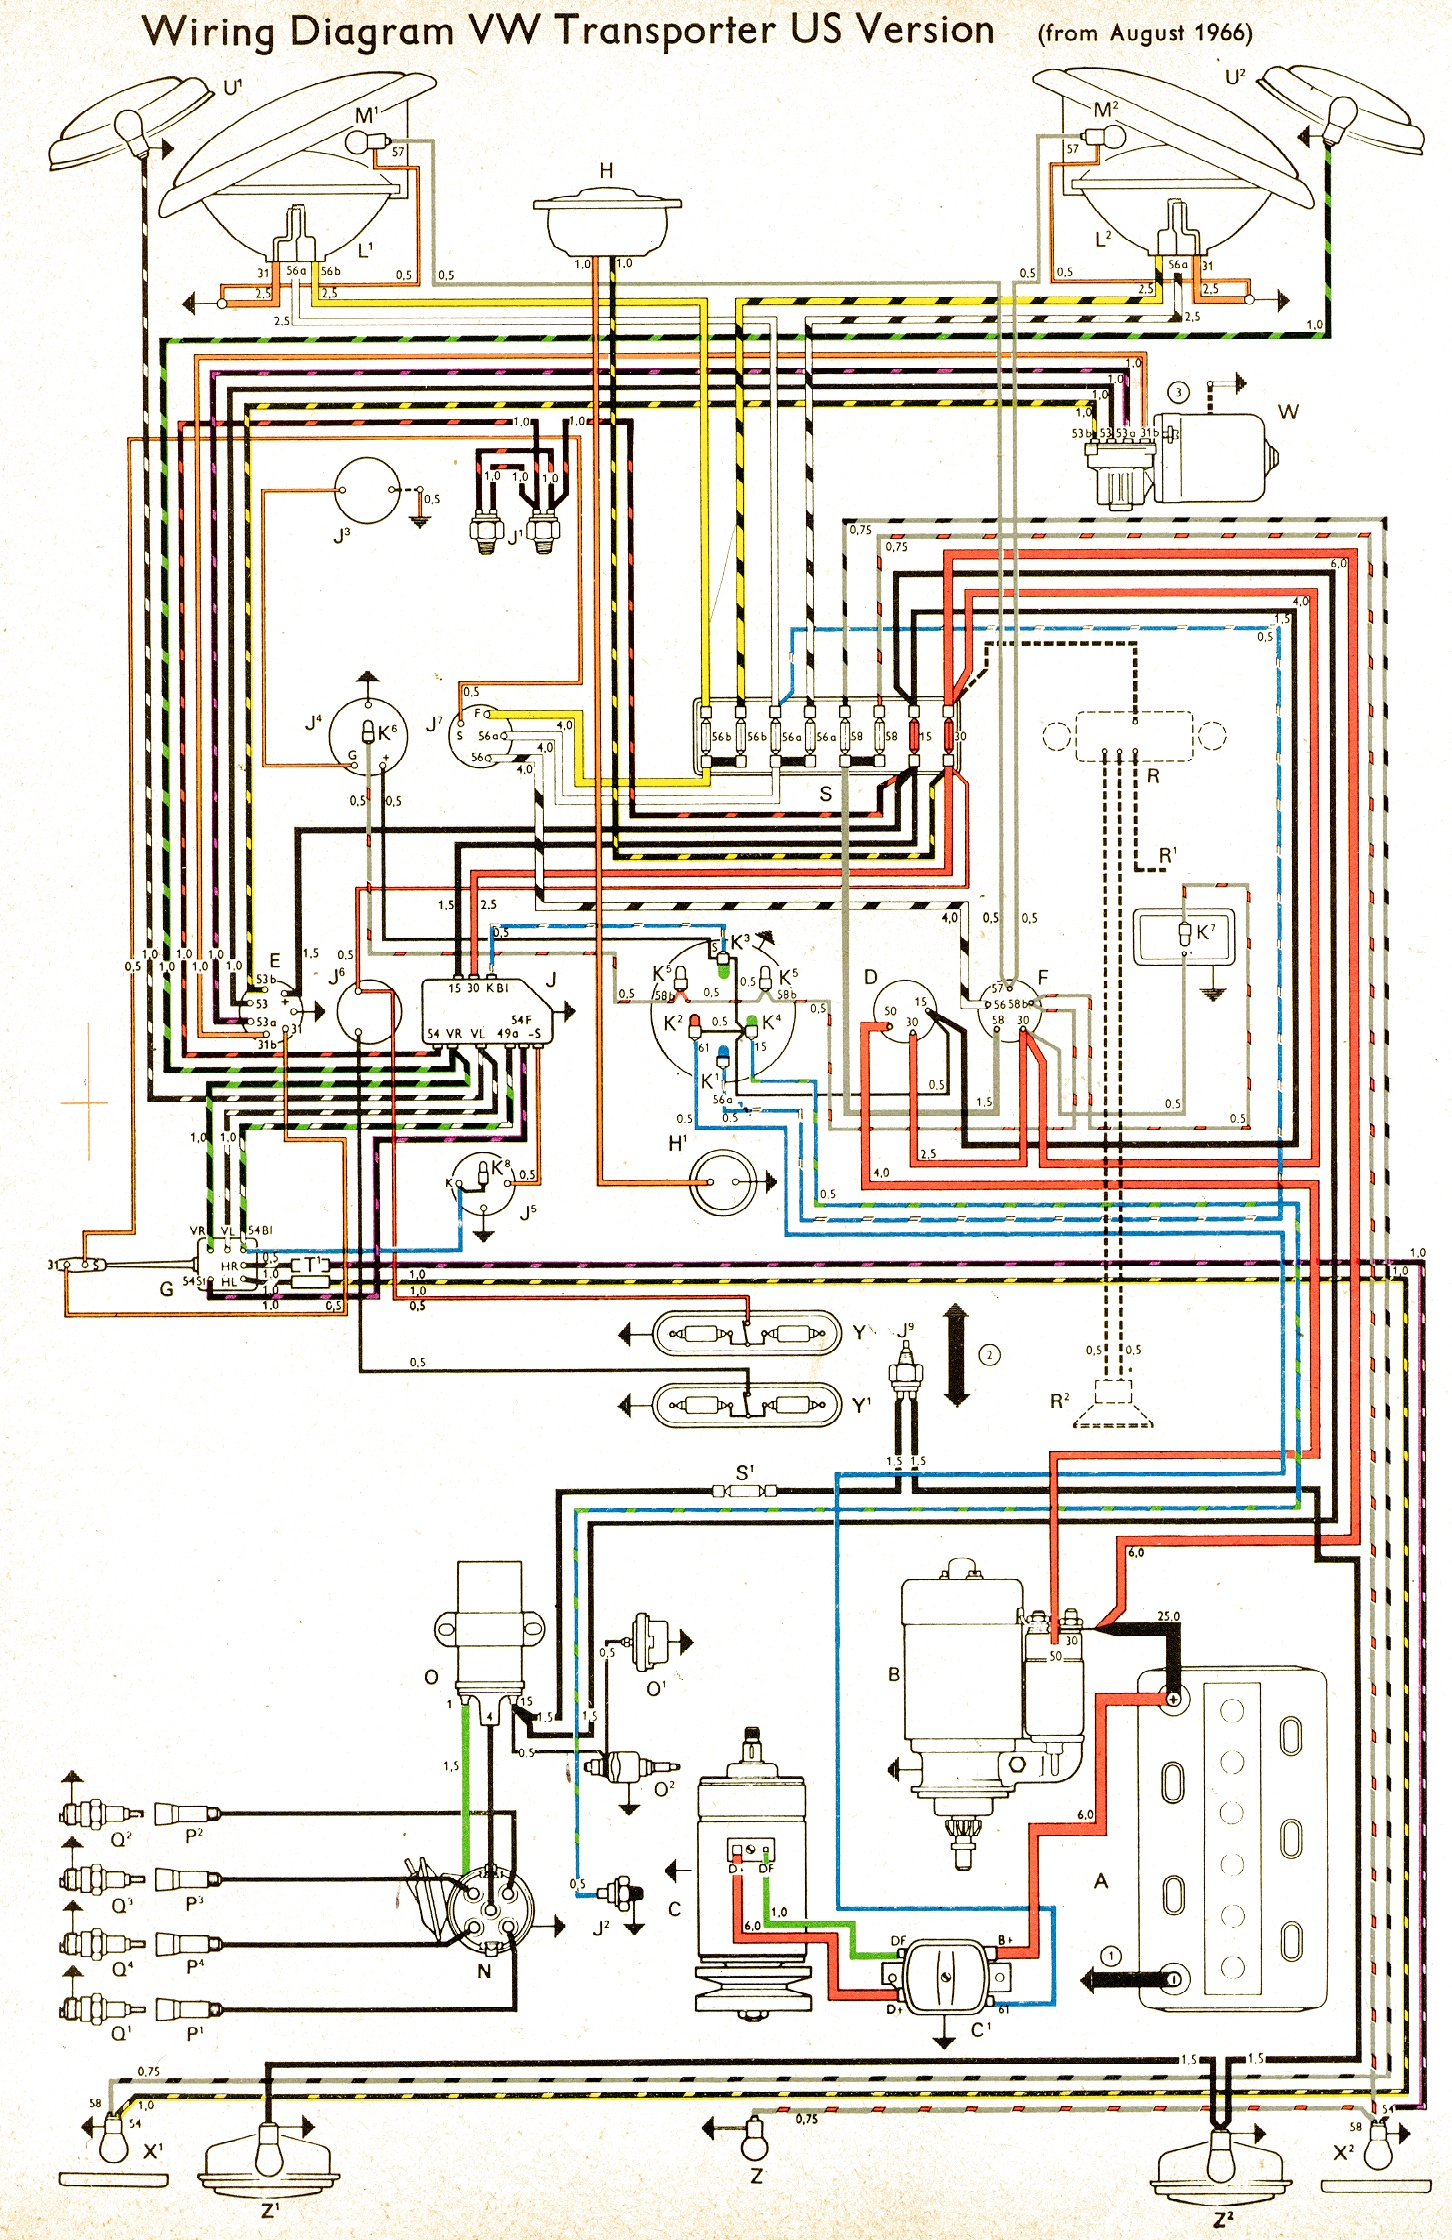 Swell Bluebird Bus Engine Diagram Basic Electronics Wiring Diagram Wiring Cloud Faunaidewilluminateatxorg